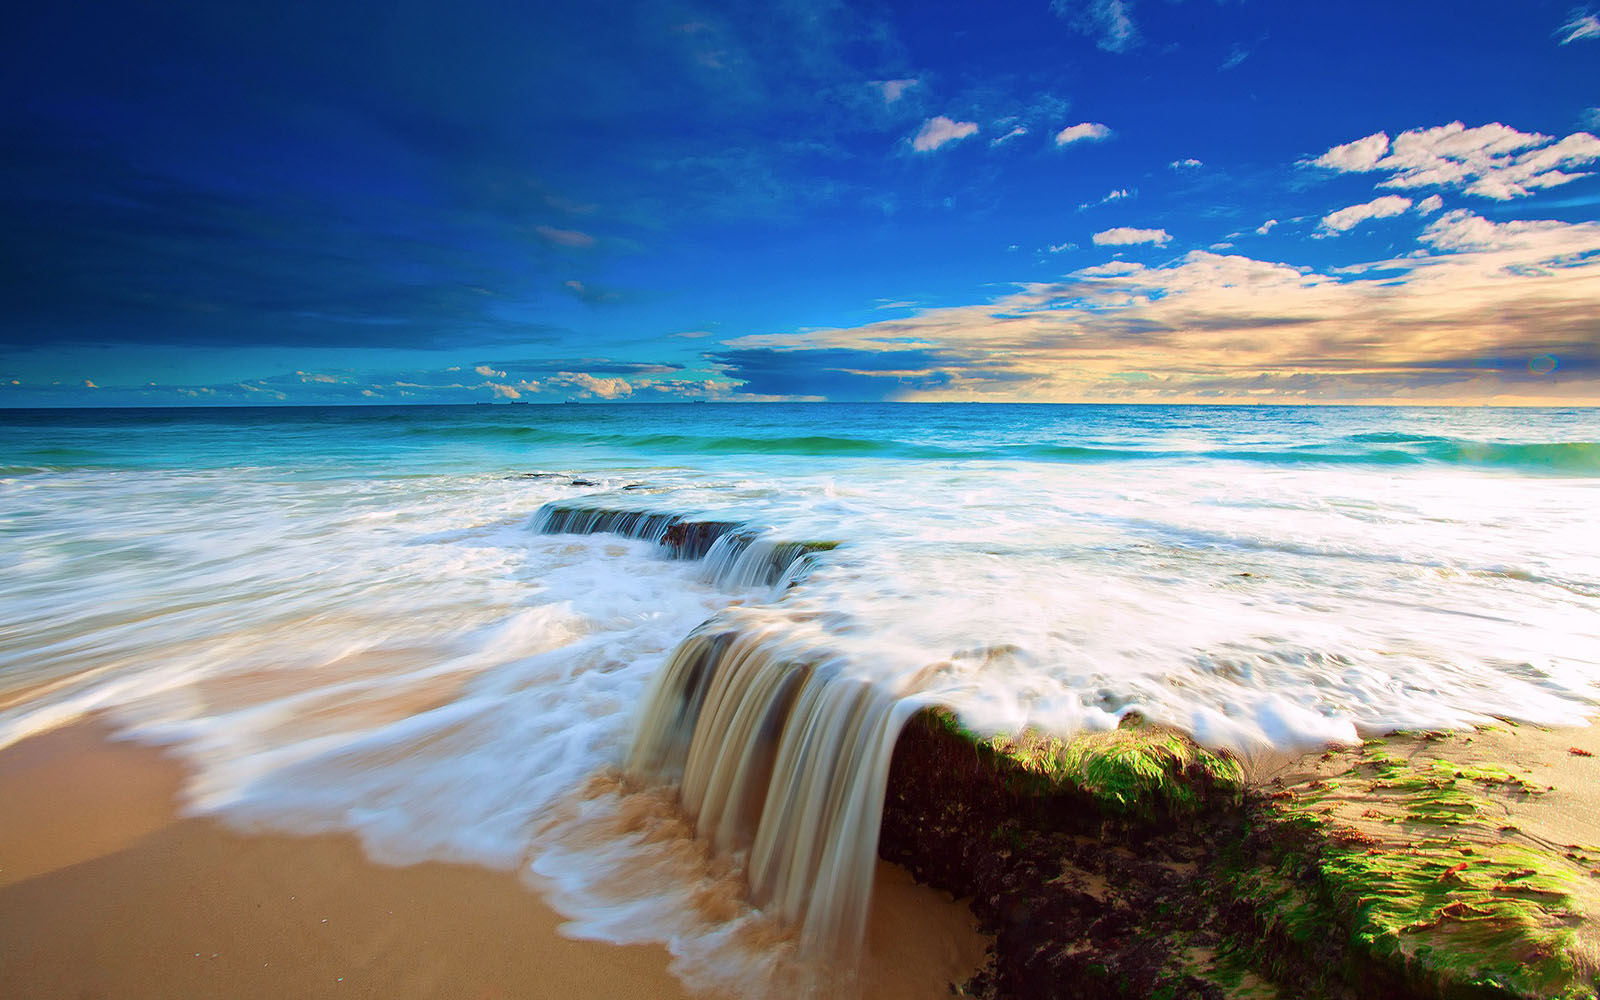 40 Beautiful Beach Wallpapers For Your Desktop Mobile And